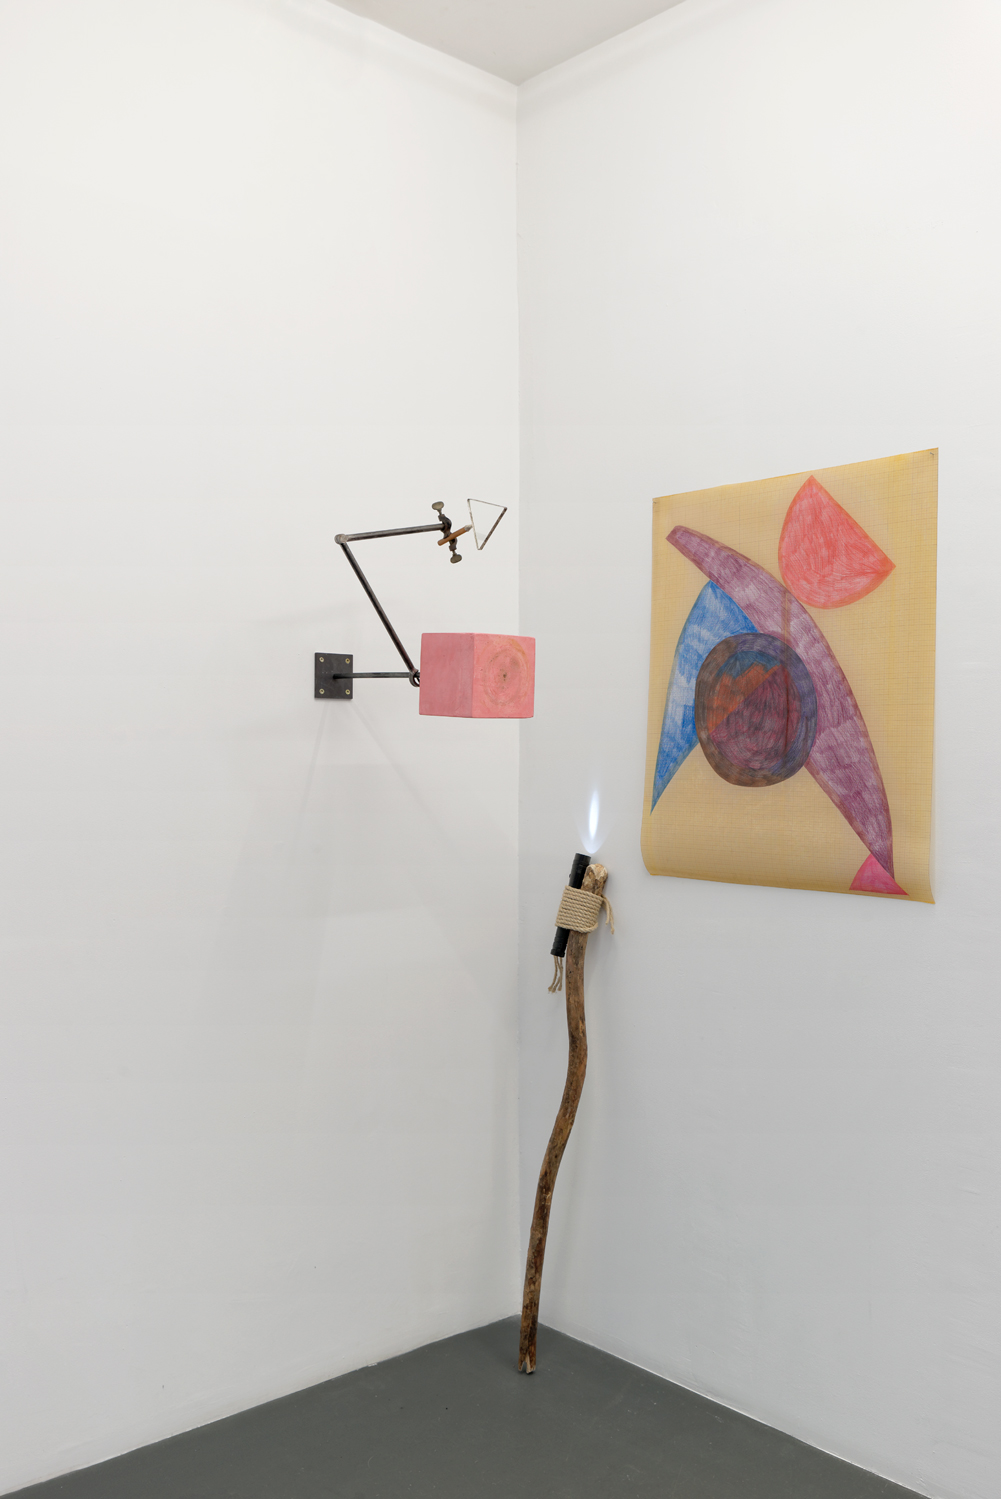 , 2014, 4 elements (Plaster, acrylic, varnish and metal; Metal, silver and glass; Wood, string and torch lamp; Acrylic and oil on paper), Variable dimension, , unique artwork, Photo: Aurélien Mole